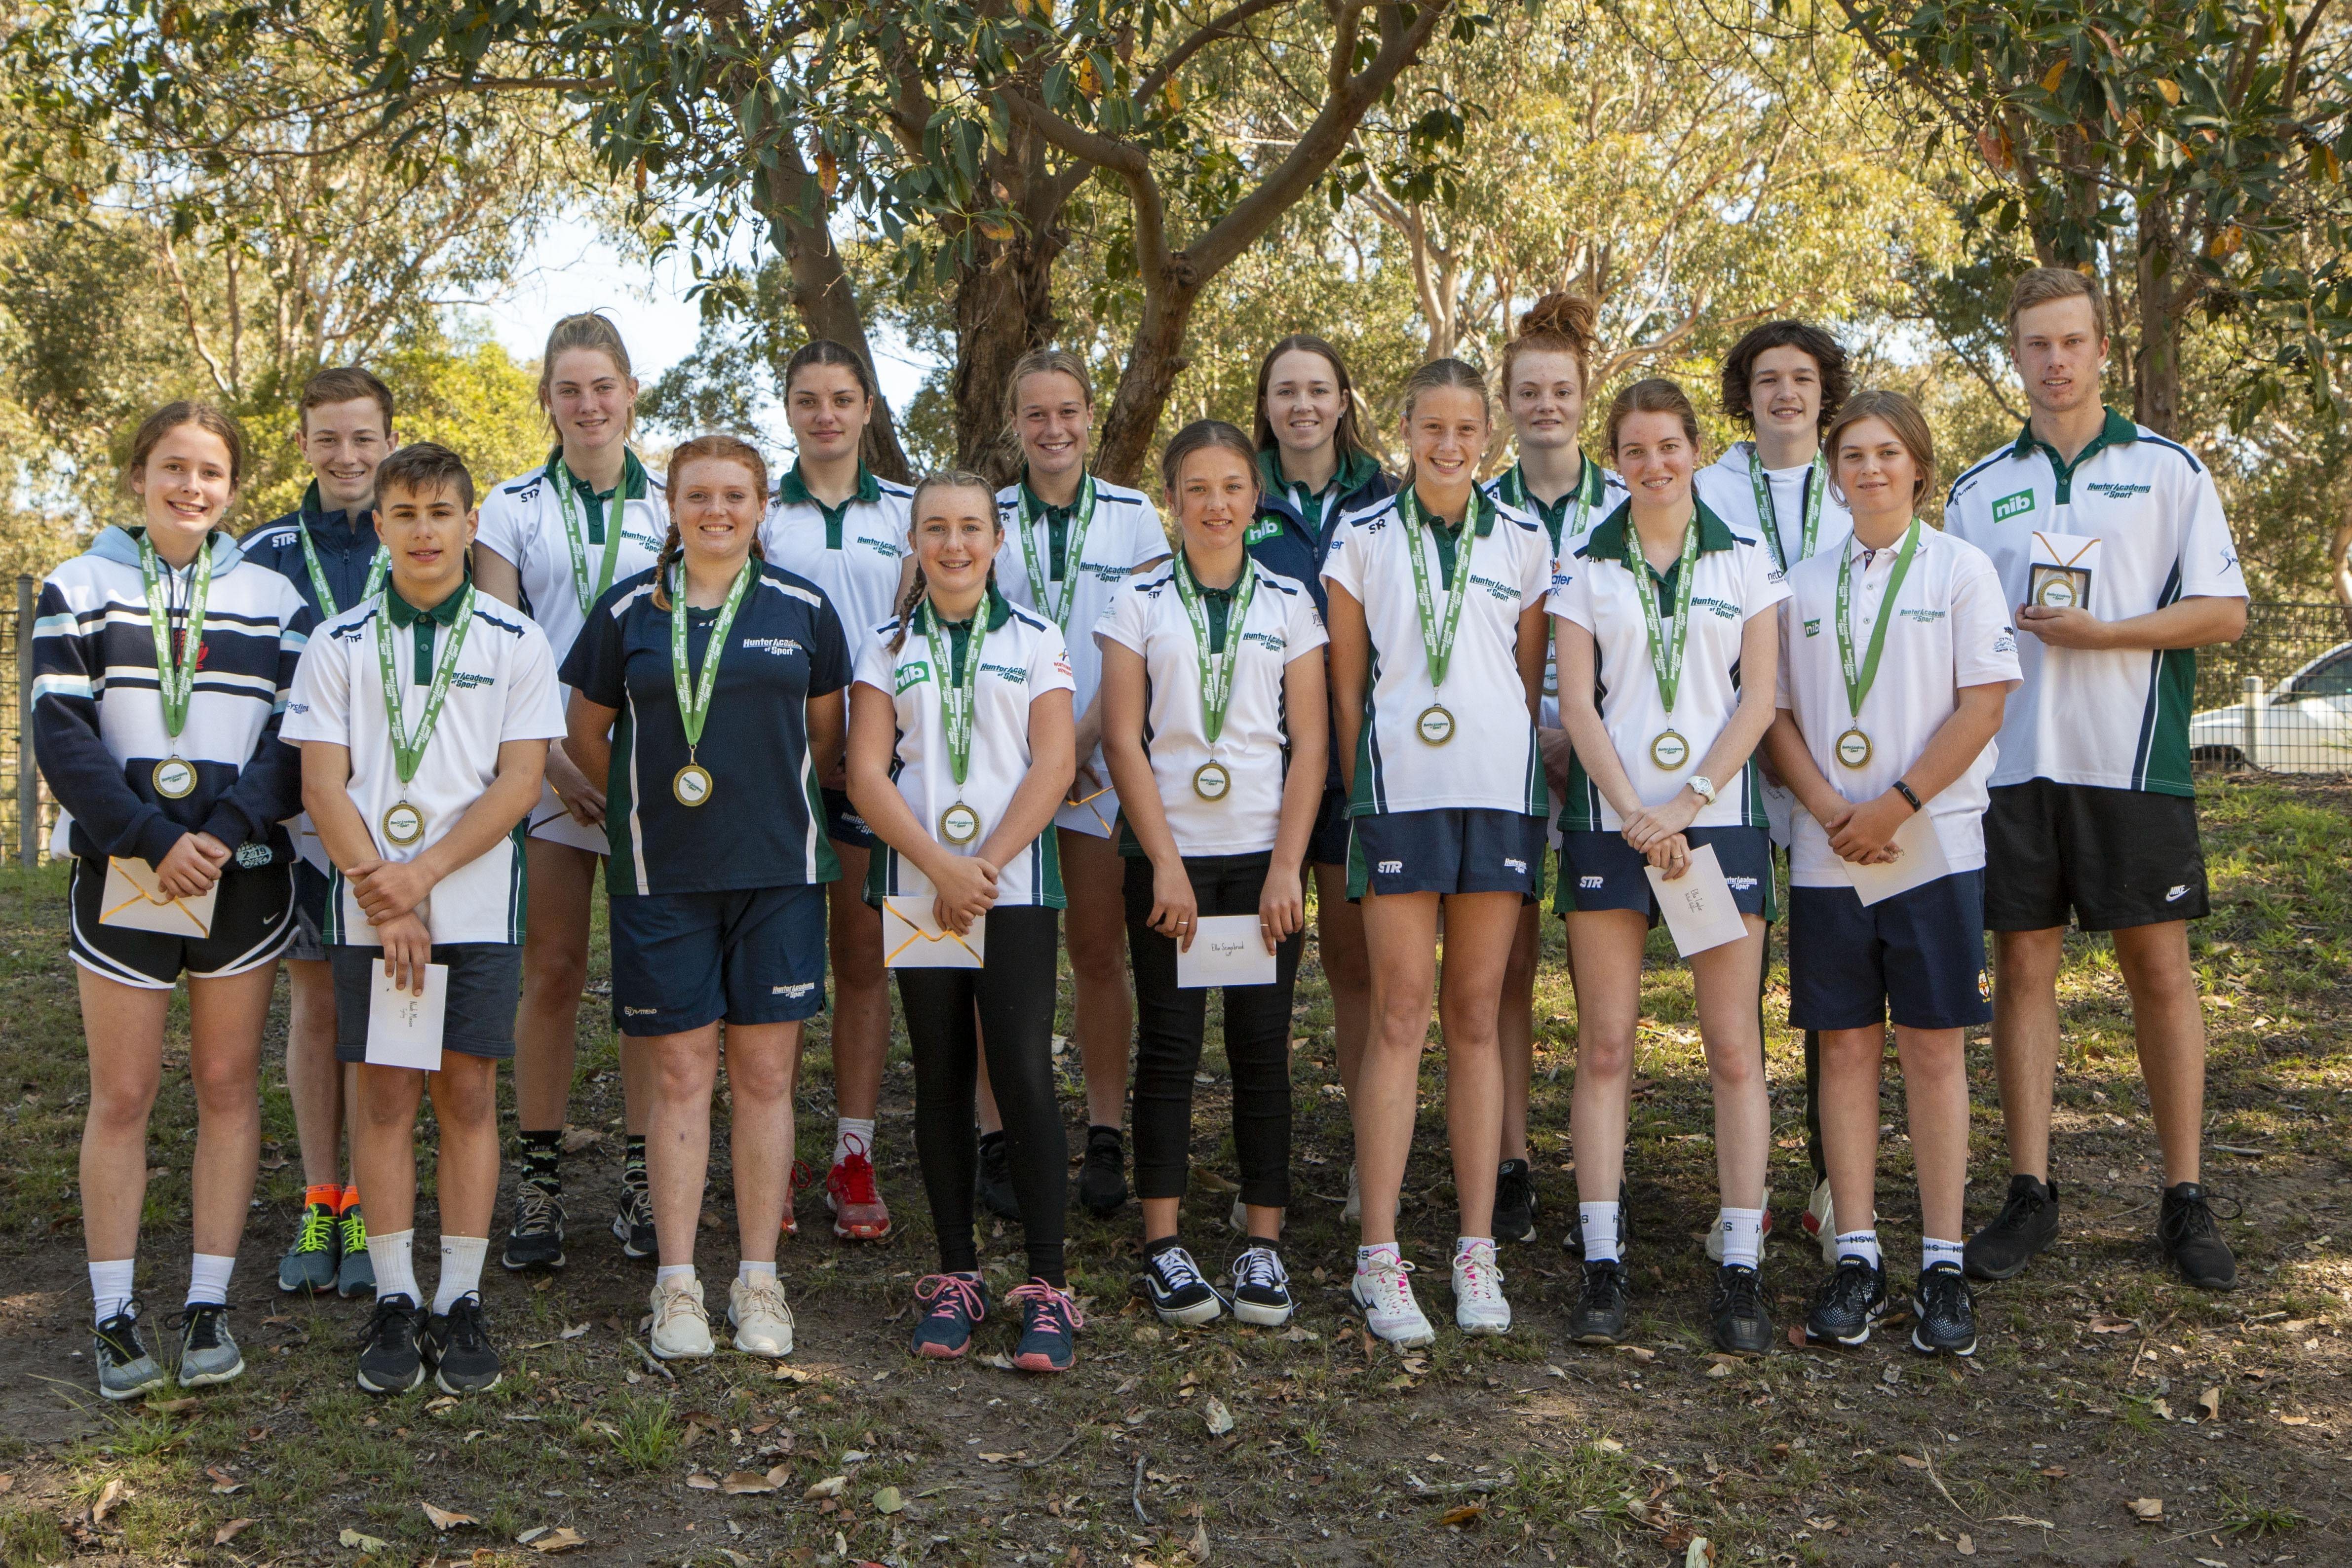 27 HAS athletes have been recognised for their talent and dedication to their sport at the annual 2018/19 Hunter Academy of Sport Awards Day, held at The University of Newcastle on Sunday, September 8th.